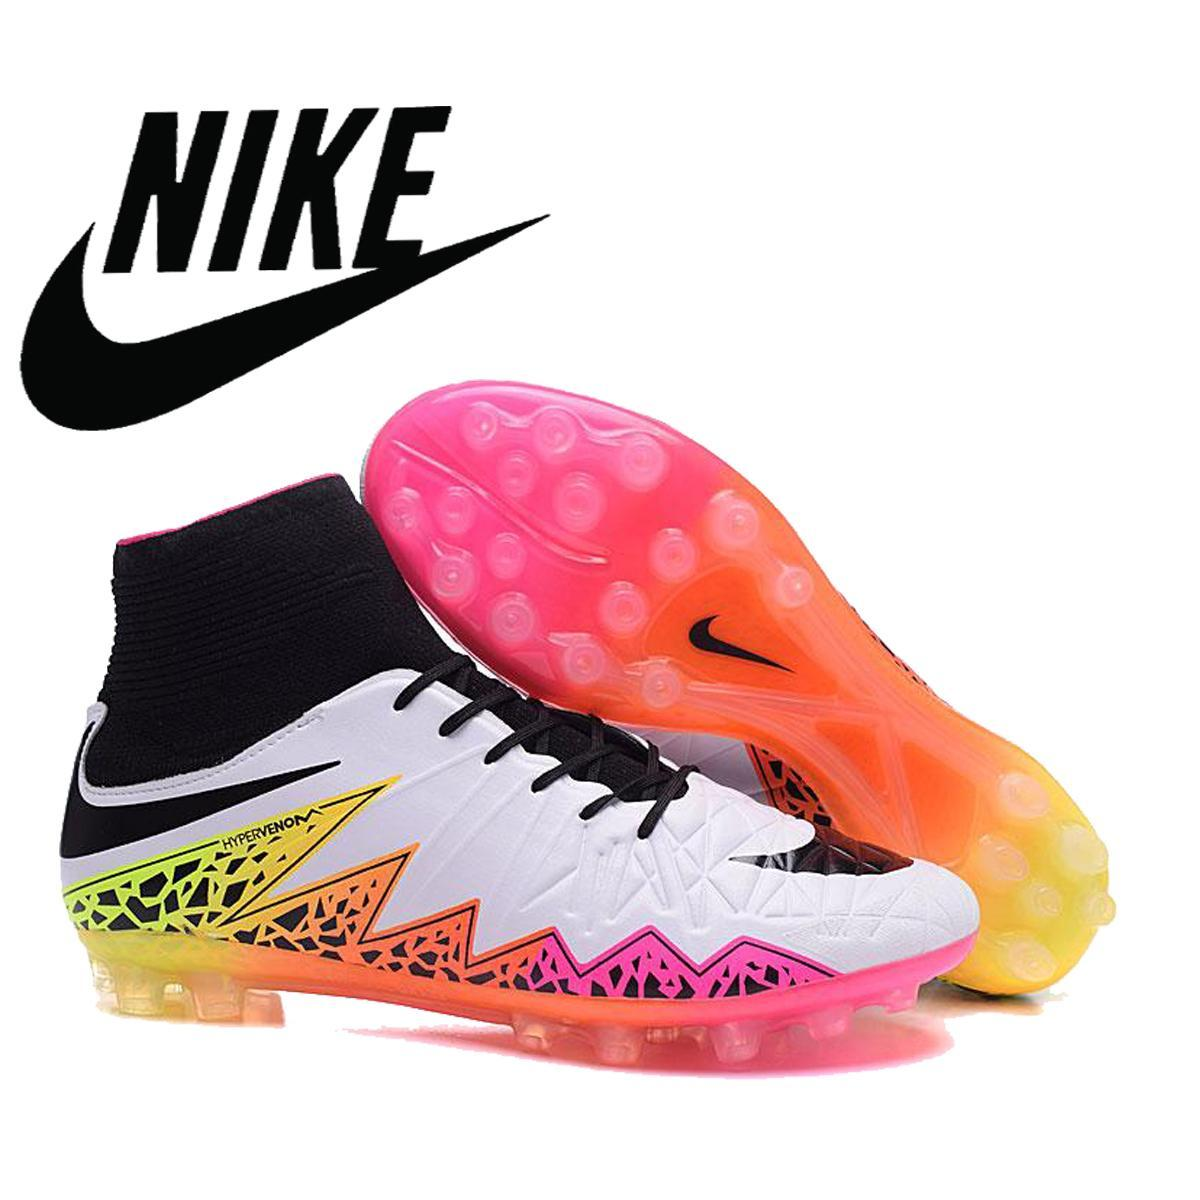 1278408c4eb 2019 Nike Hypervenom Phantom Ii Fg Soccer Cleats With Acc 100% Original  Mens Boys Soccer Cleats Nike Soccer Cleats Acc Rainbow Color Free From ...